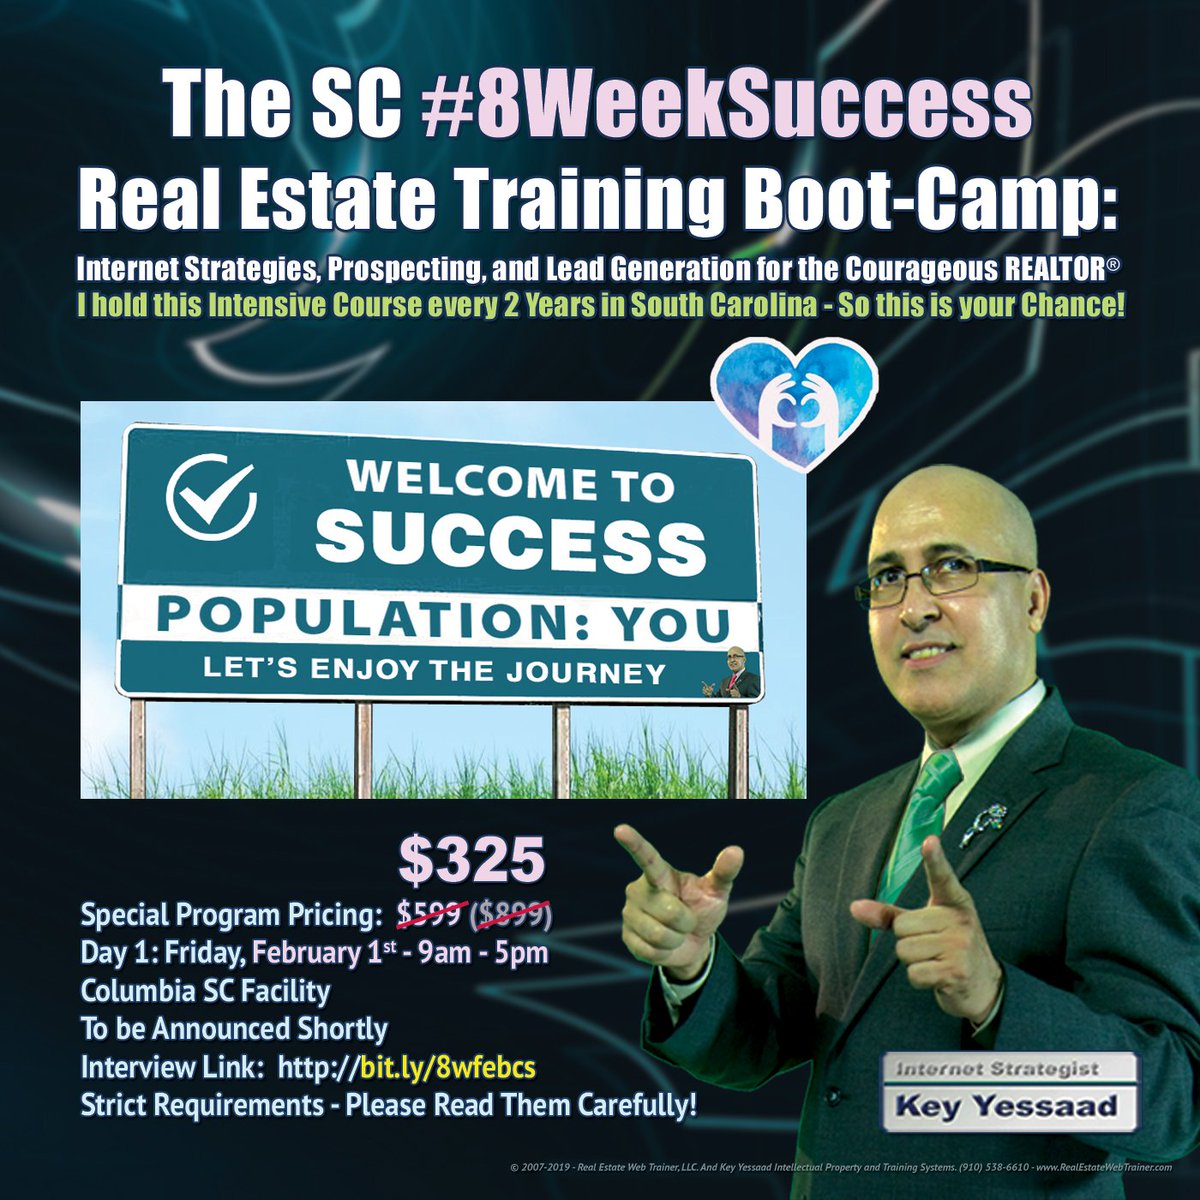 ... Inquire about the #8WeekSuccess Course here:  https://t.co/5iuEGC7ME2 -  #RealEstateProspecting #RealEstateTraining #RealEstateCoaching  #RealEstateListings #RealEstateLeads #RealEstateMarketing #RealEstateSEO  #RealEstateSuccess